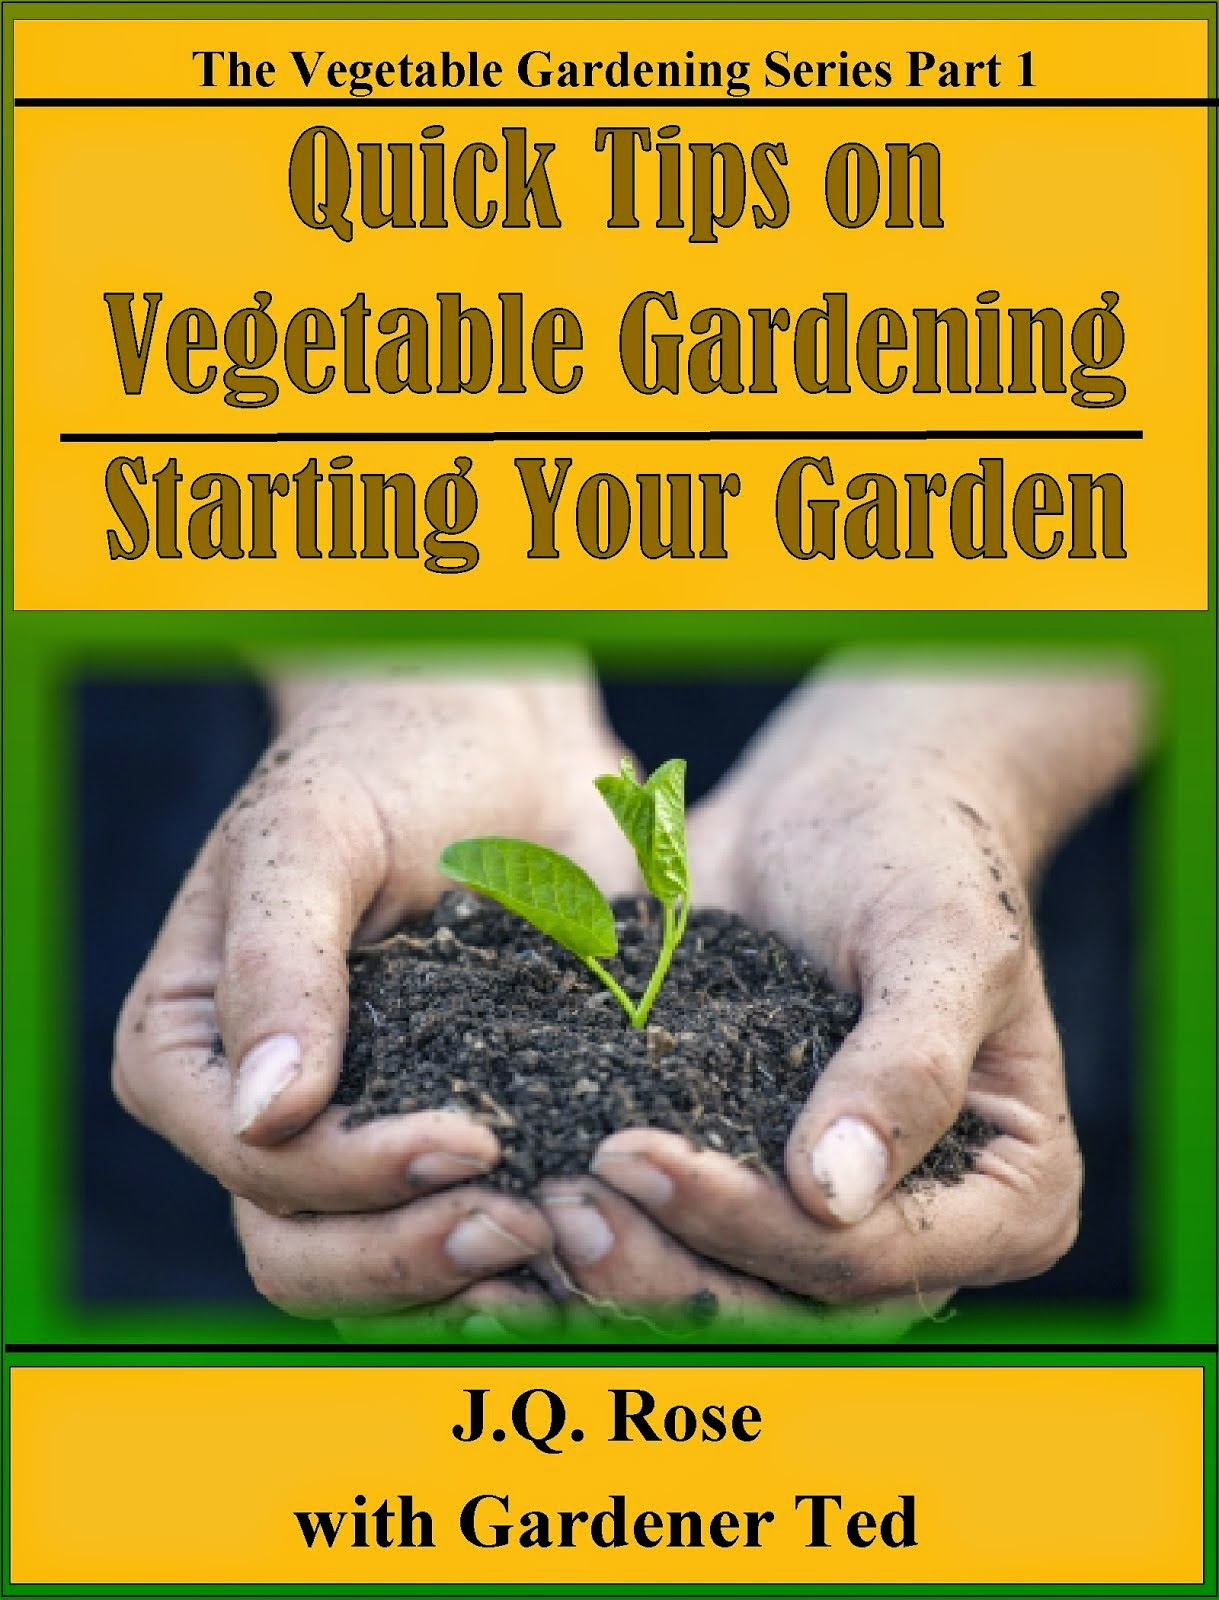 Quick Tips on Vegetable Gardening